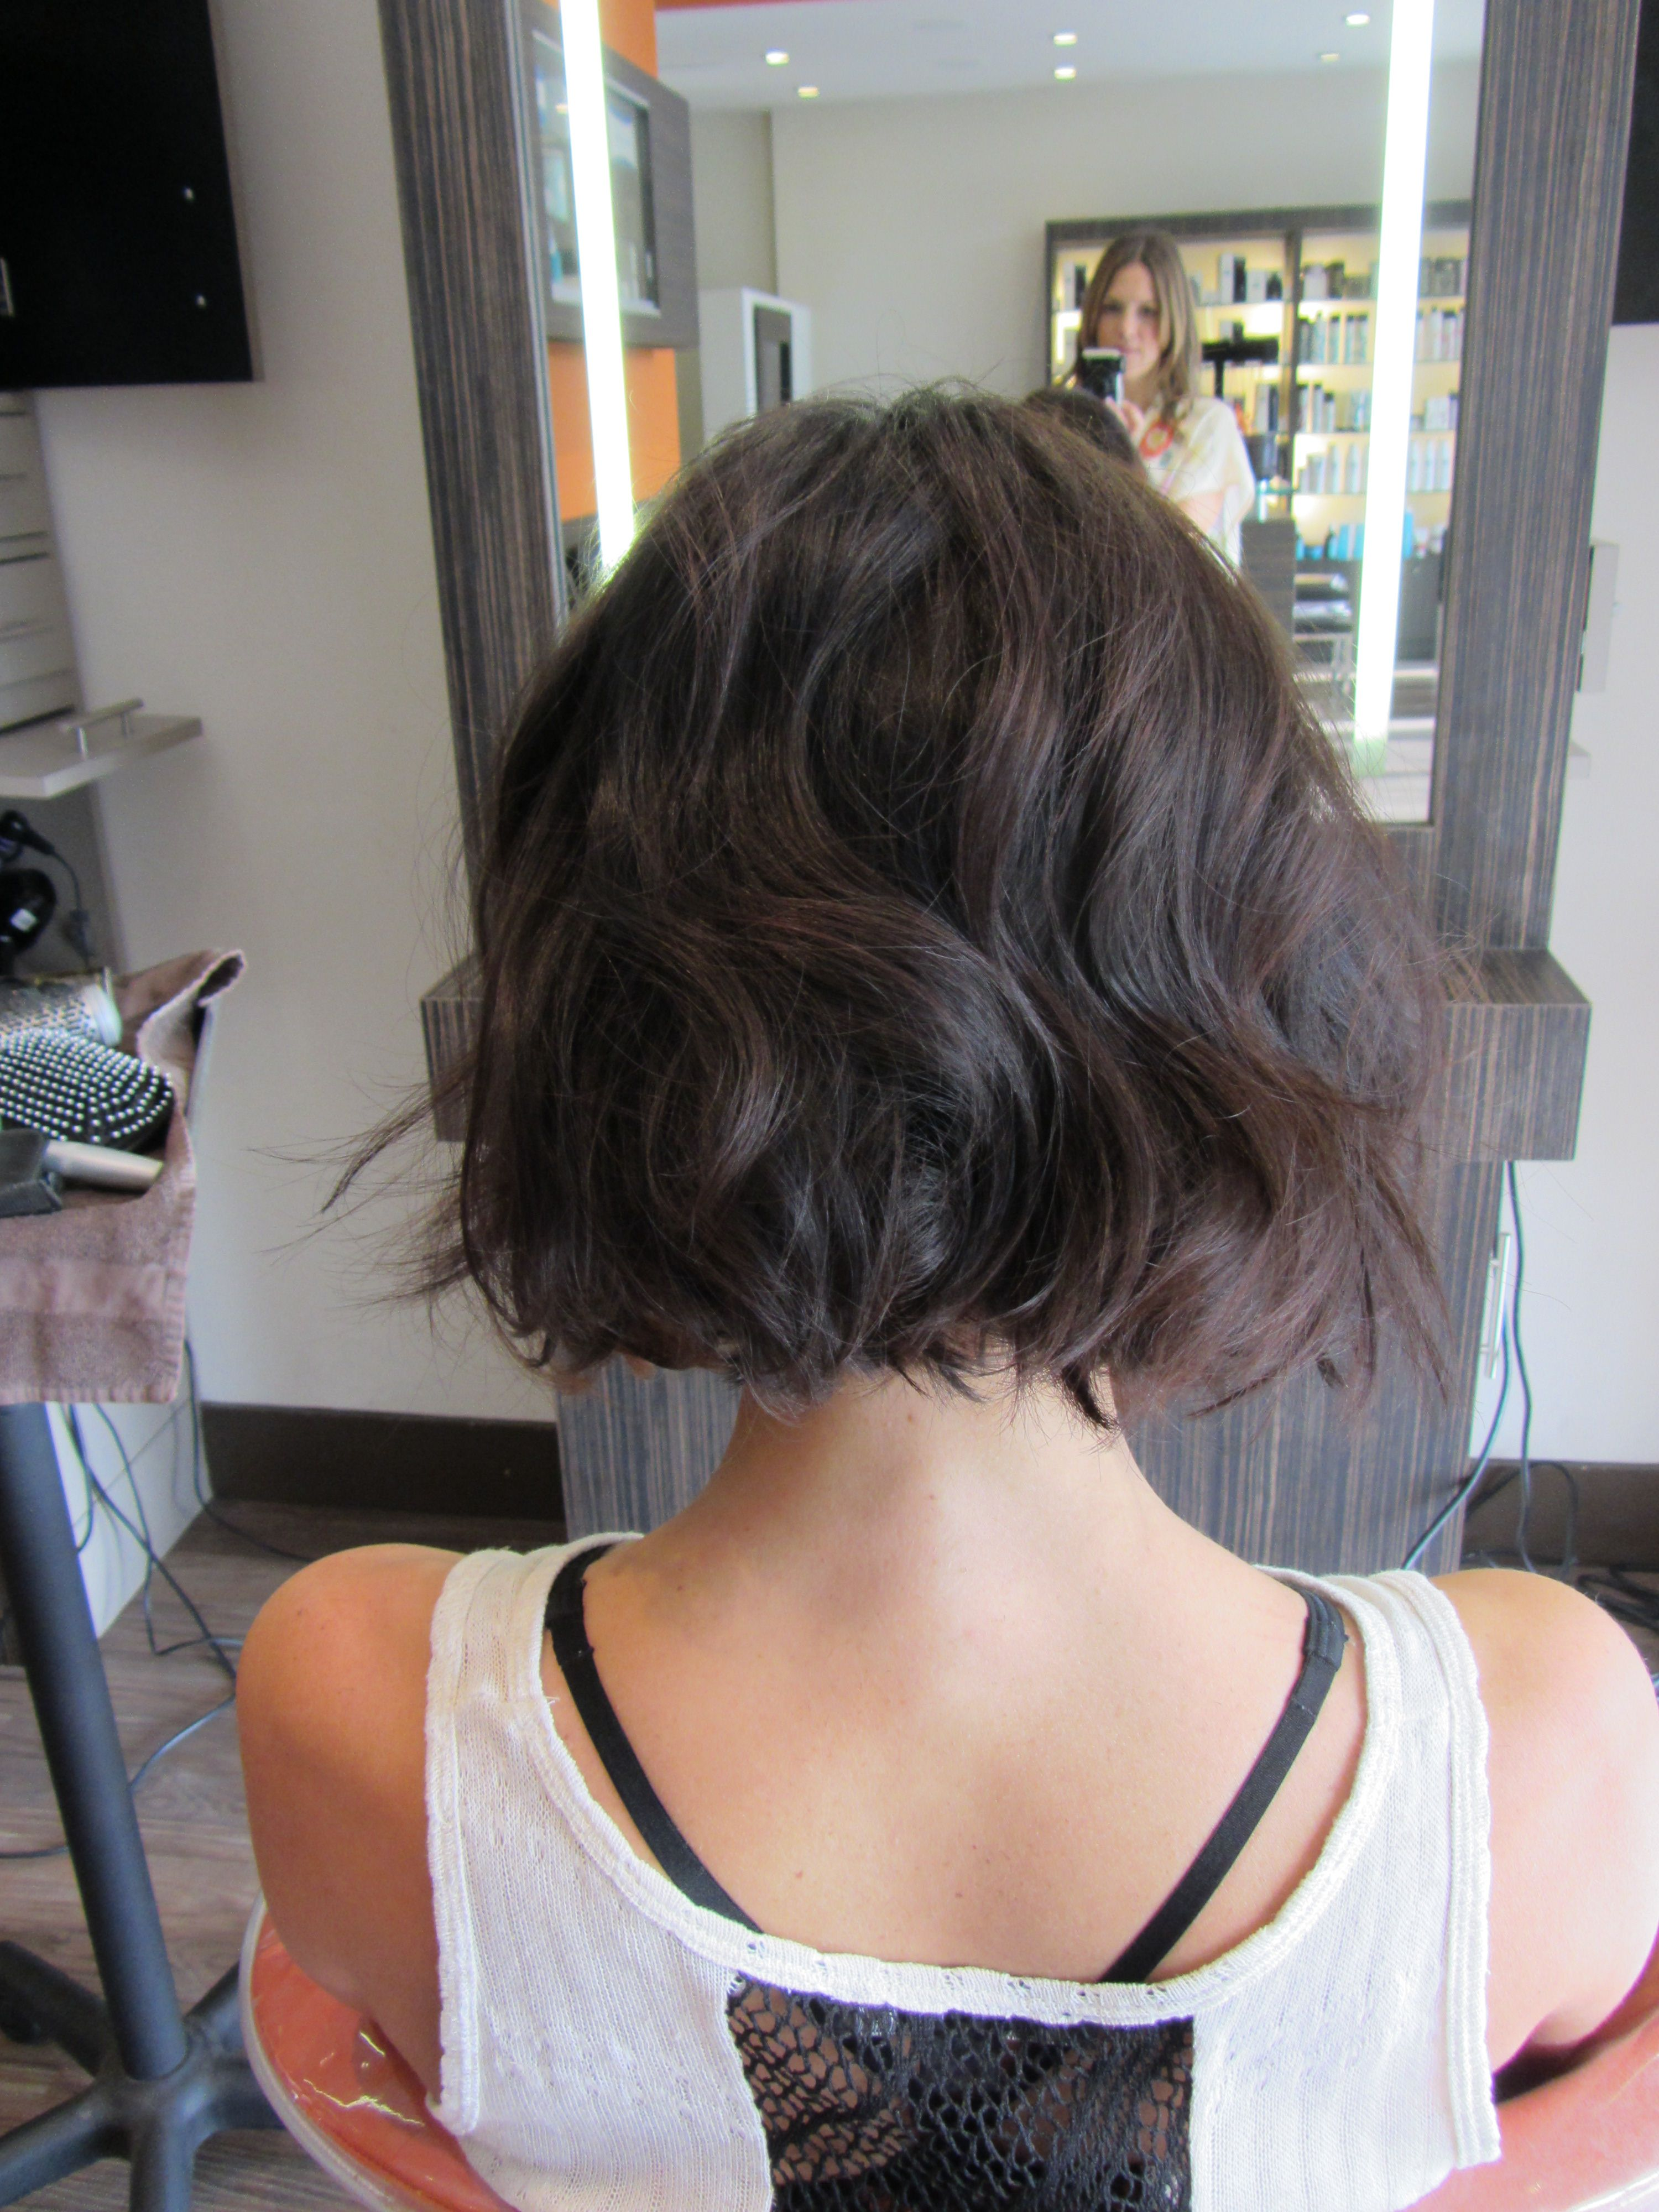 40 awesome short haircuts for curly hair sloe - The Best 20 Short Wavy Hairstyles 19